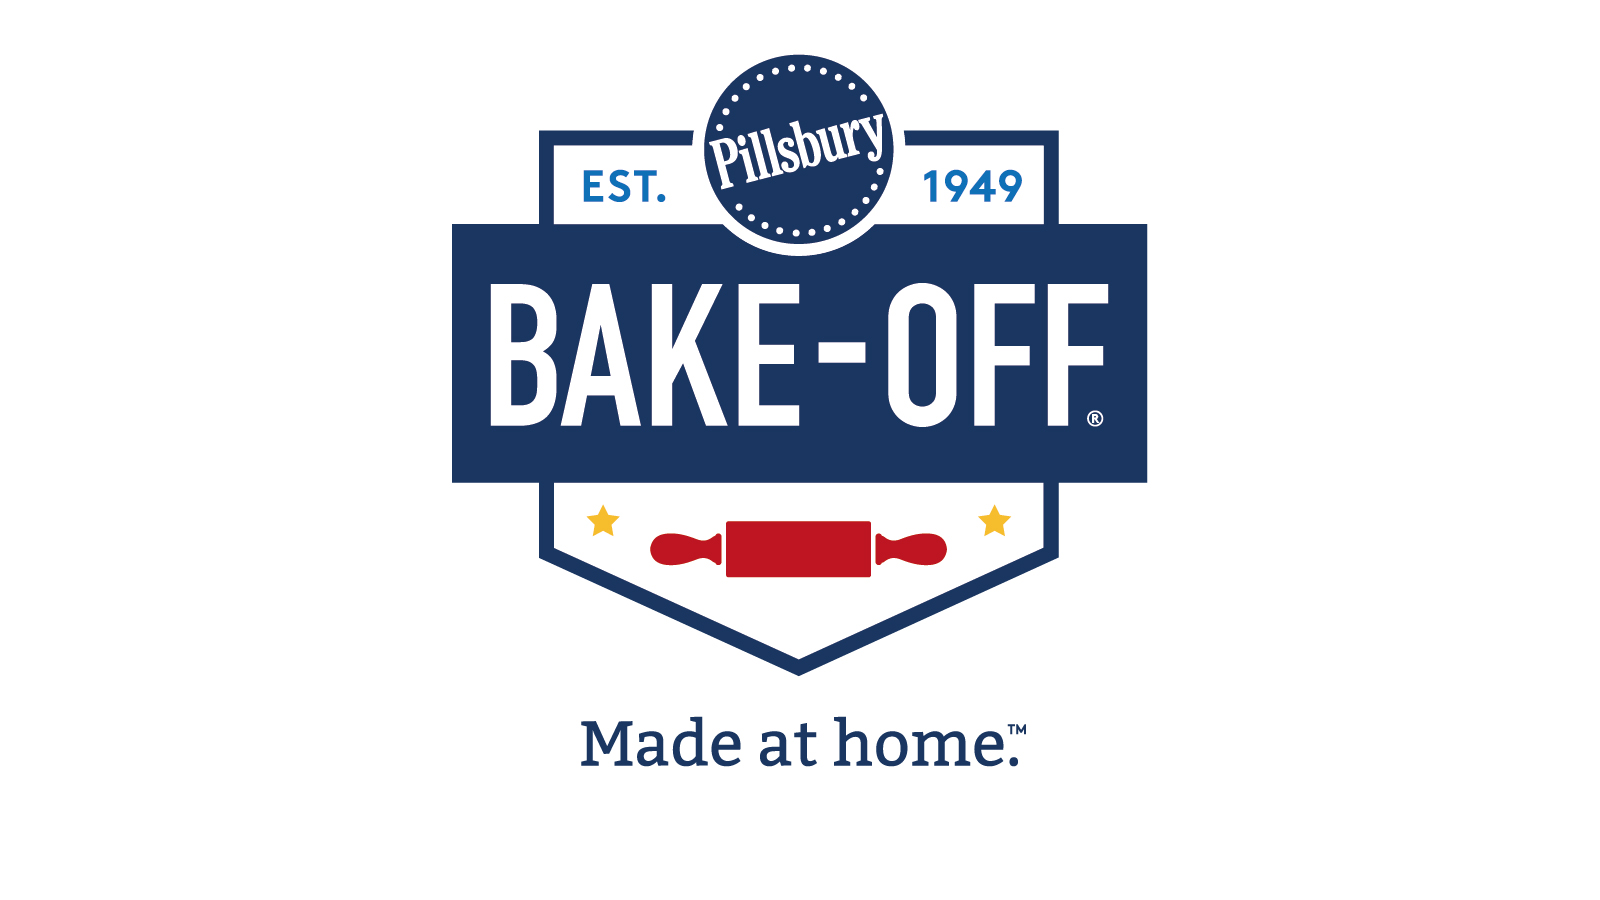 The 49th Pillsbury Bake-Off® Contest is officially open and invites home cooks nationwide to submit an original recipe using Pillsbury refrigerated dough along with a story behind the recipe.